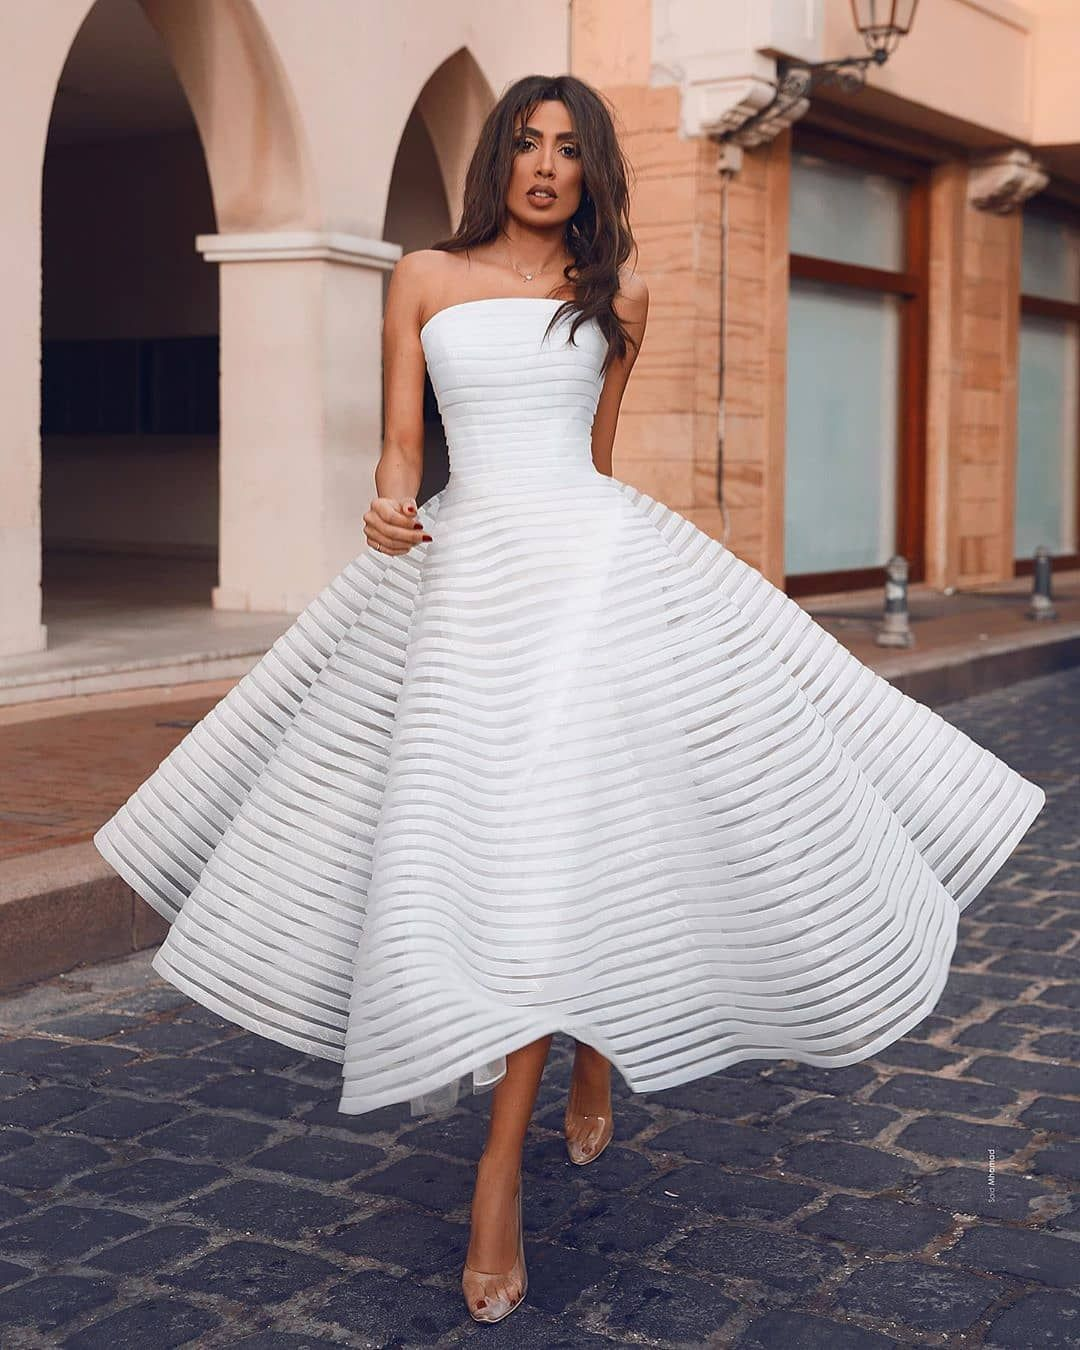 2 289 Likes 47 Comments Housher Hamburg Stylish On Instagram Dress Yes Or No Tagsta Fashion Fashionist In 2020 Short Bridal Gown Dresses Hot Dress [ 1350 x 1080 Pixel ]